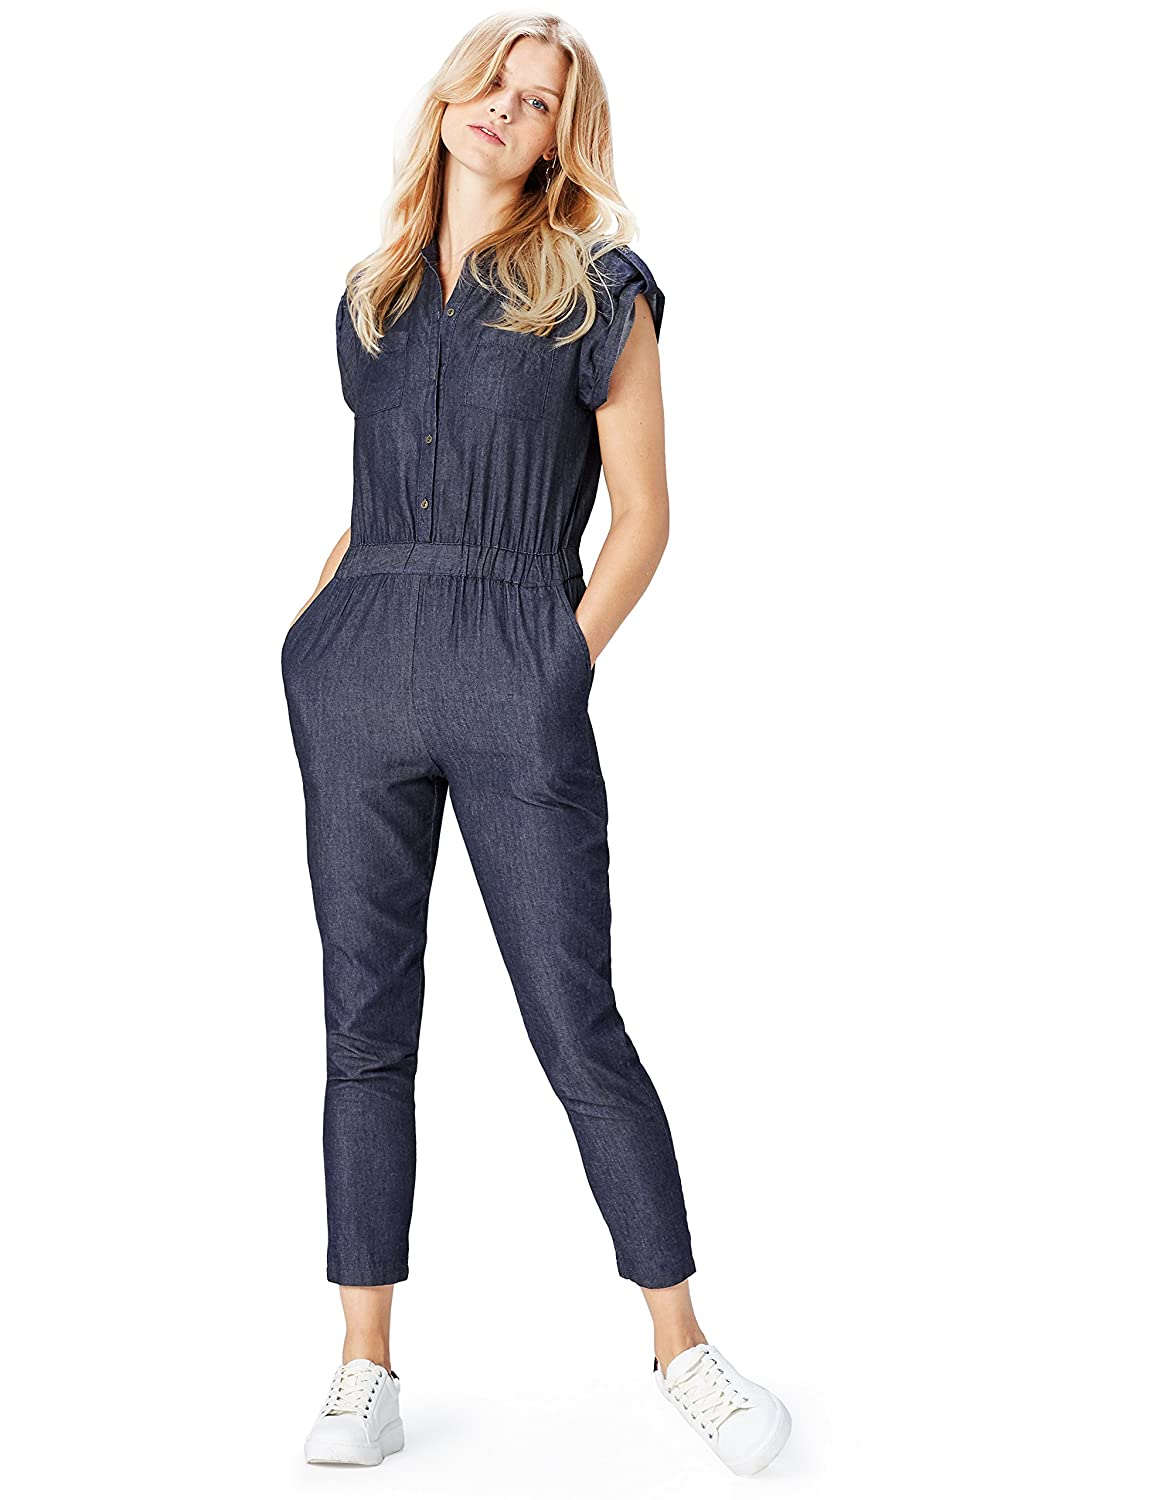 TALLA 38. Marca Amazon - find. Mono Cambray para Mujer